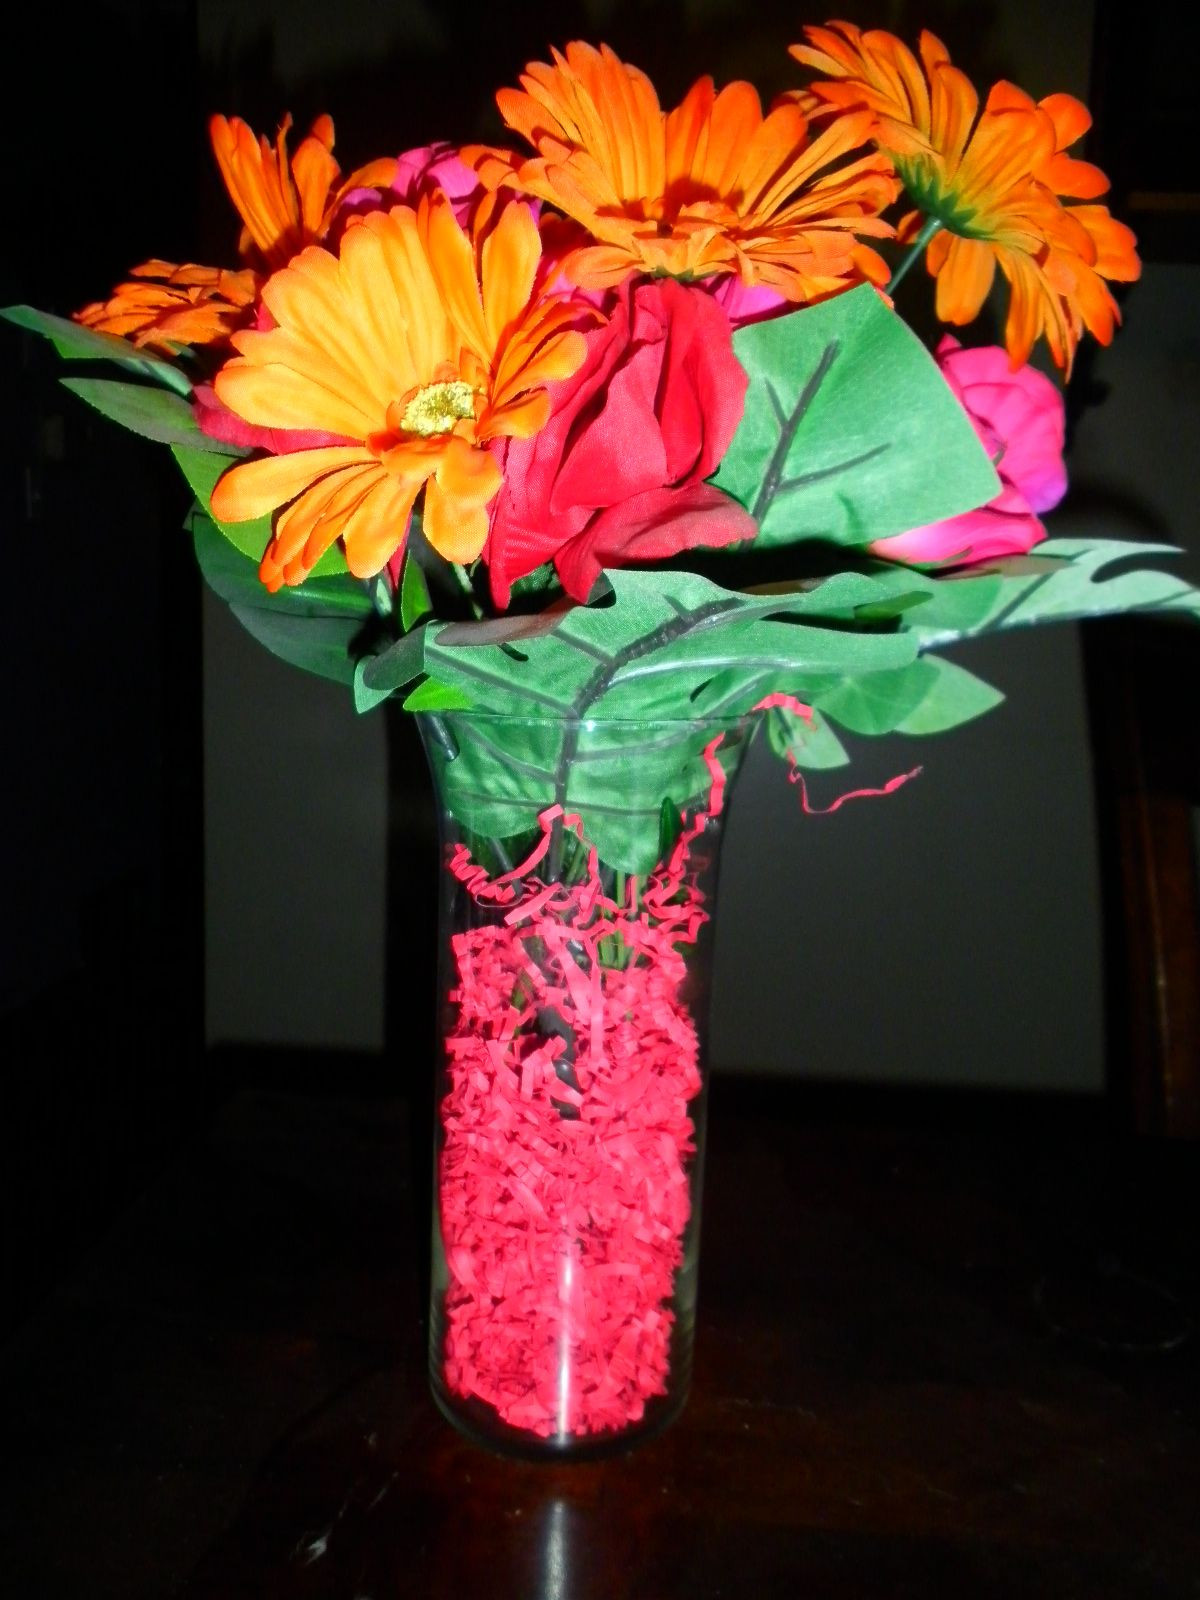 artificial flowers in vase with lights of flower vases flower vases pinterest inexpensive centerpieces with fun ways to make inexpensive centerpieces fake flowers and leaves with basket stuffing from a dollar store and at some a nice vase